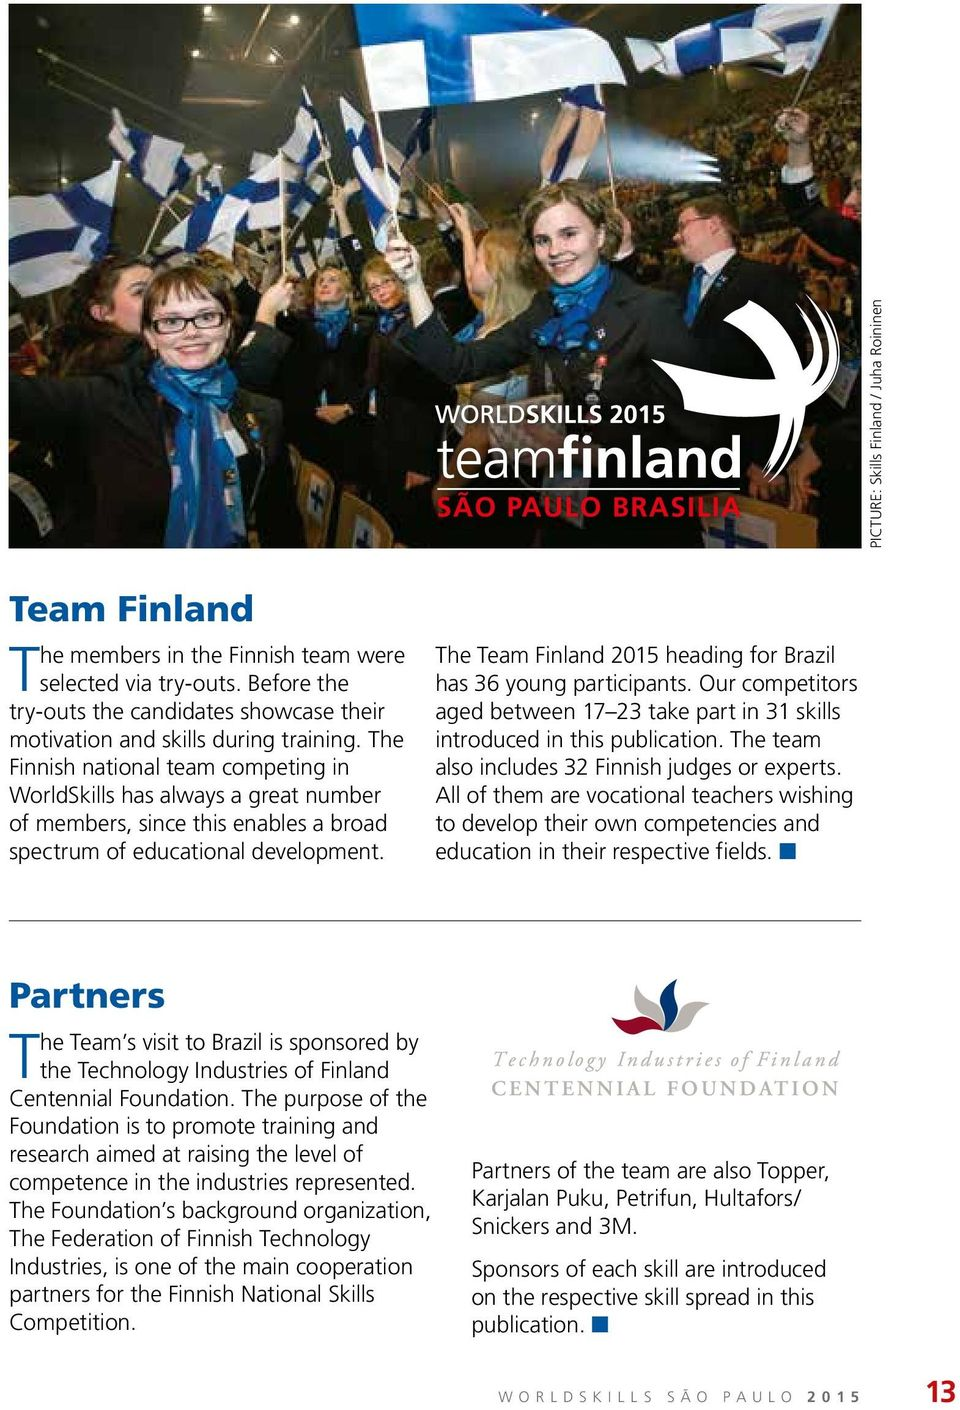 The Finnish national team competing in WorldSkills has always a great number of members, since this enables a broad spectrum of educational development.